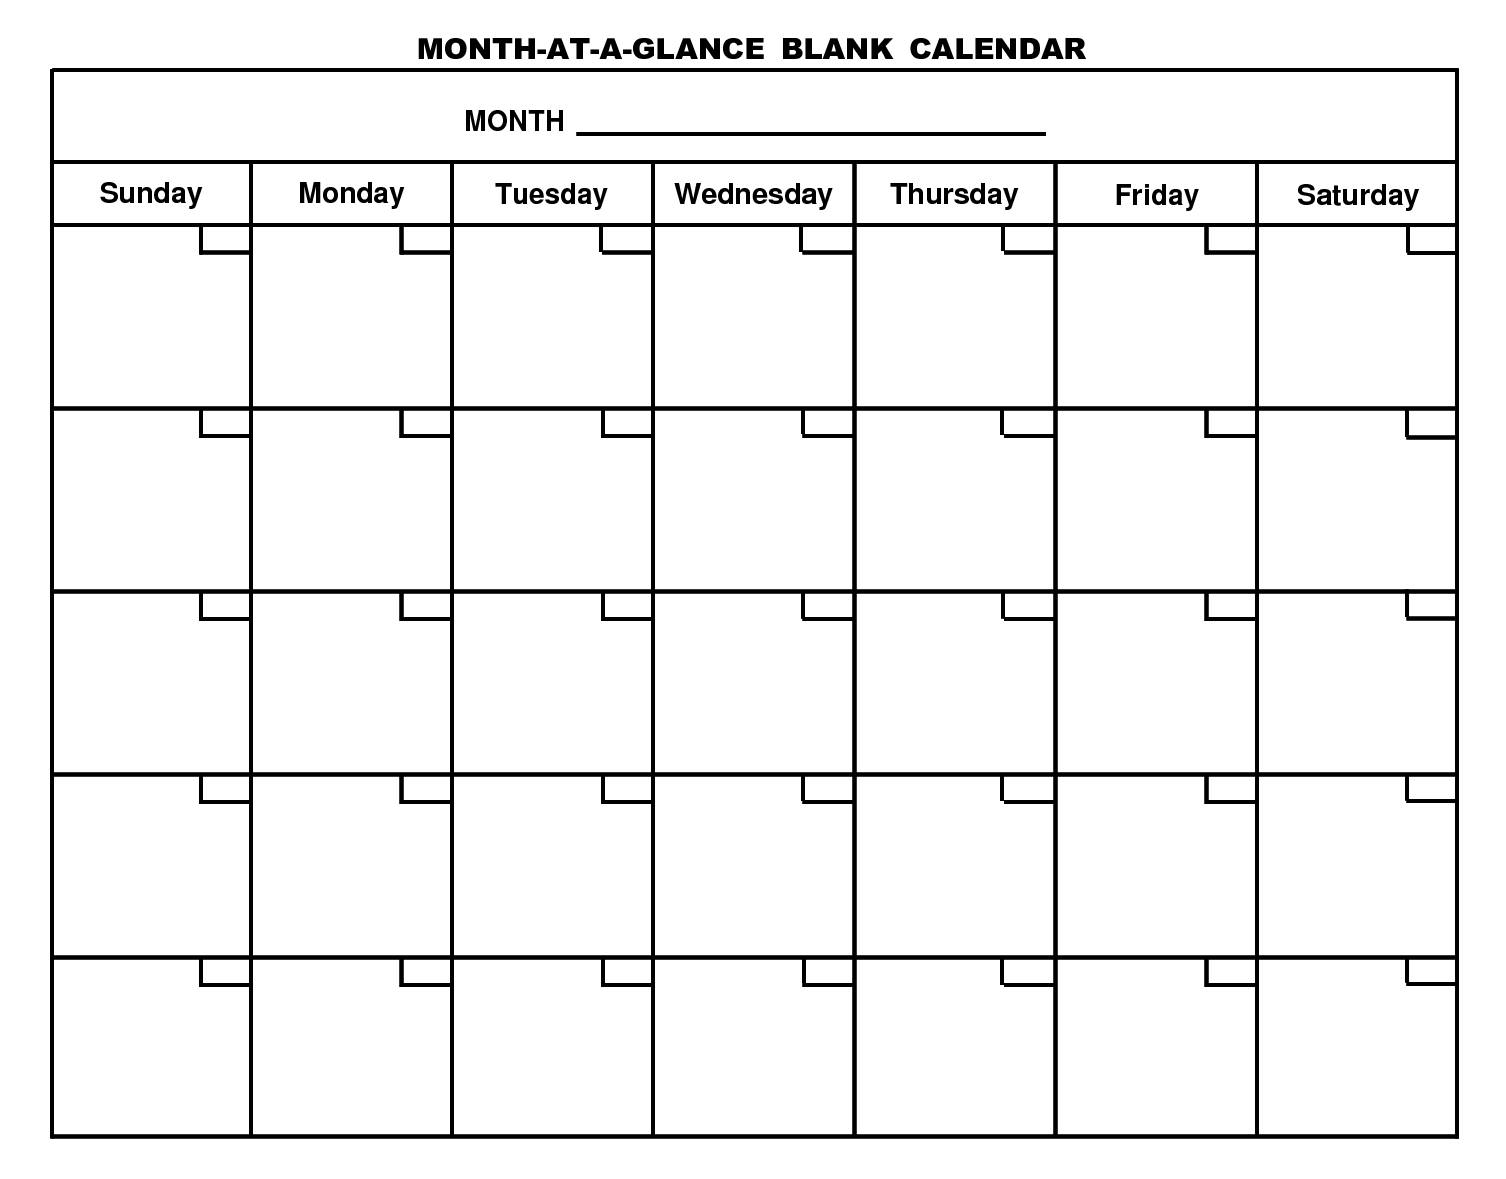 Month Calendar Template - 28 Images - 3 Month Calendar With Notes  Printable Calendar Month By Month